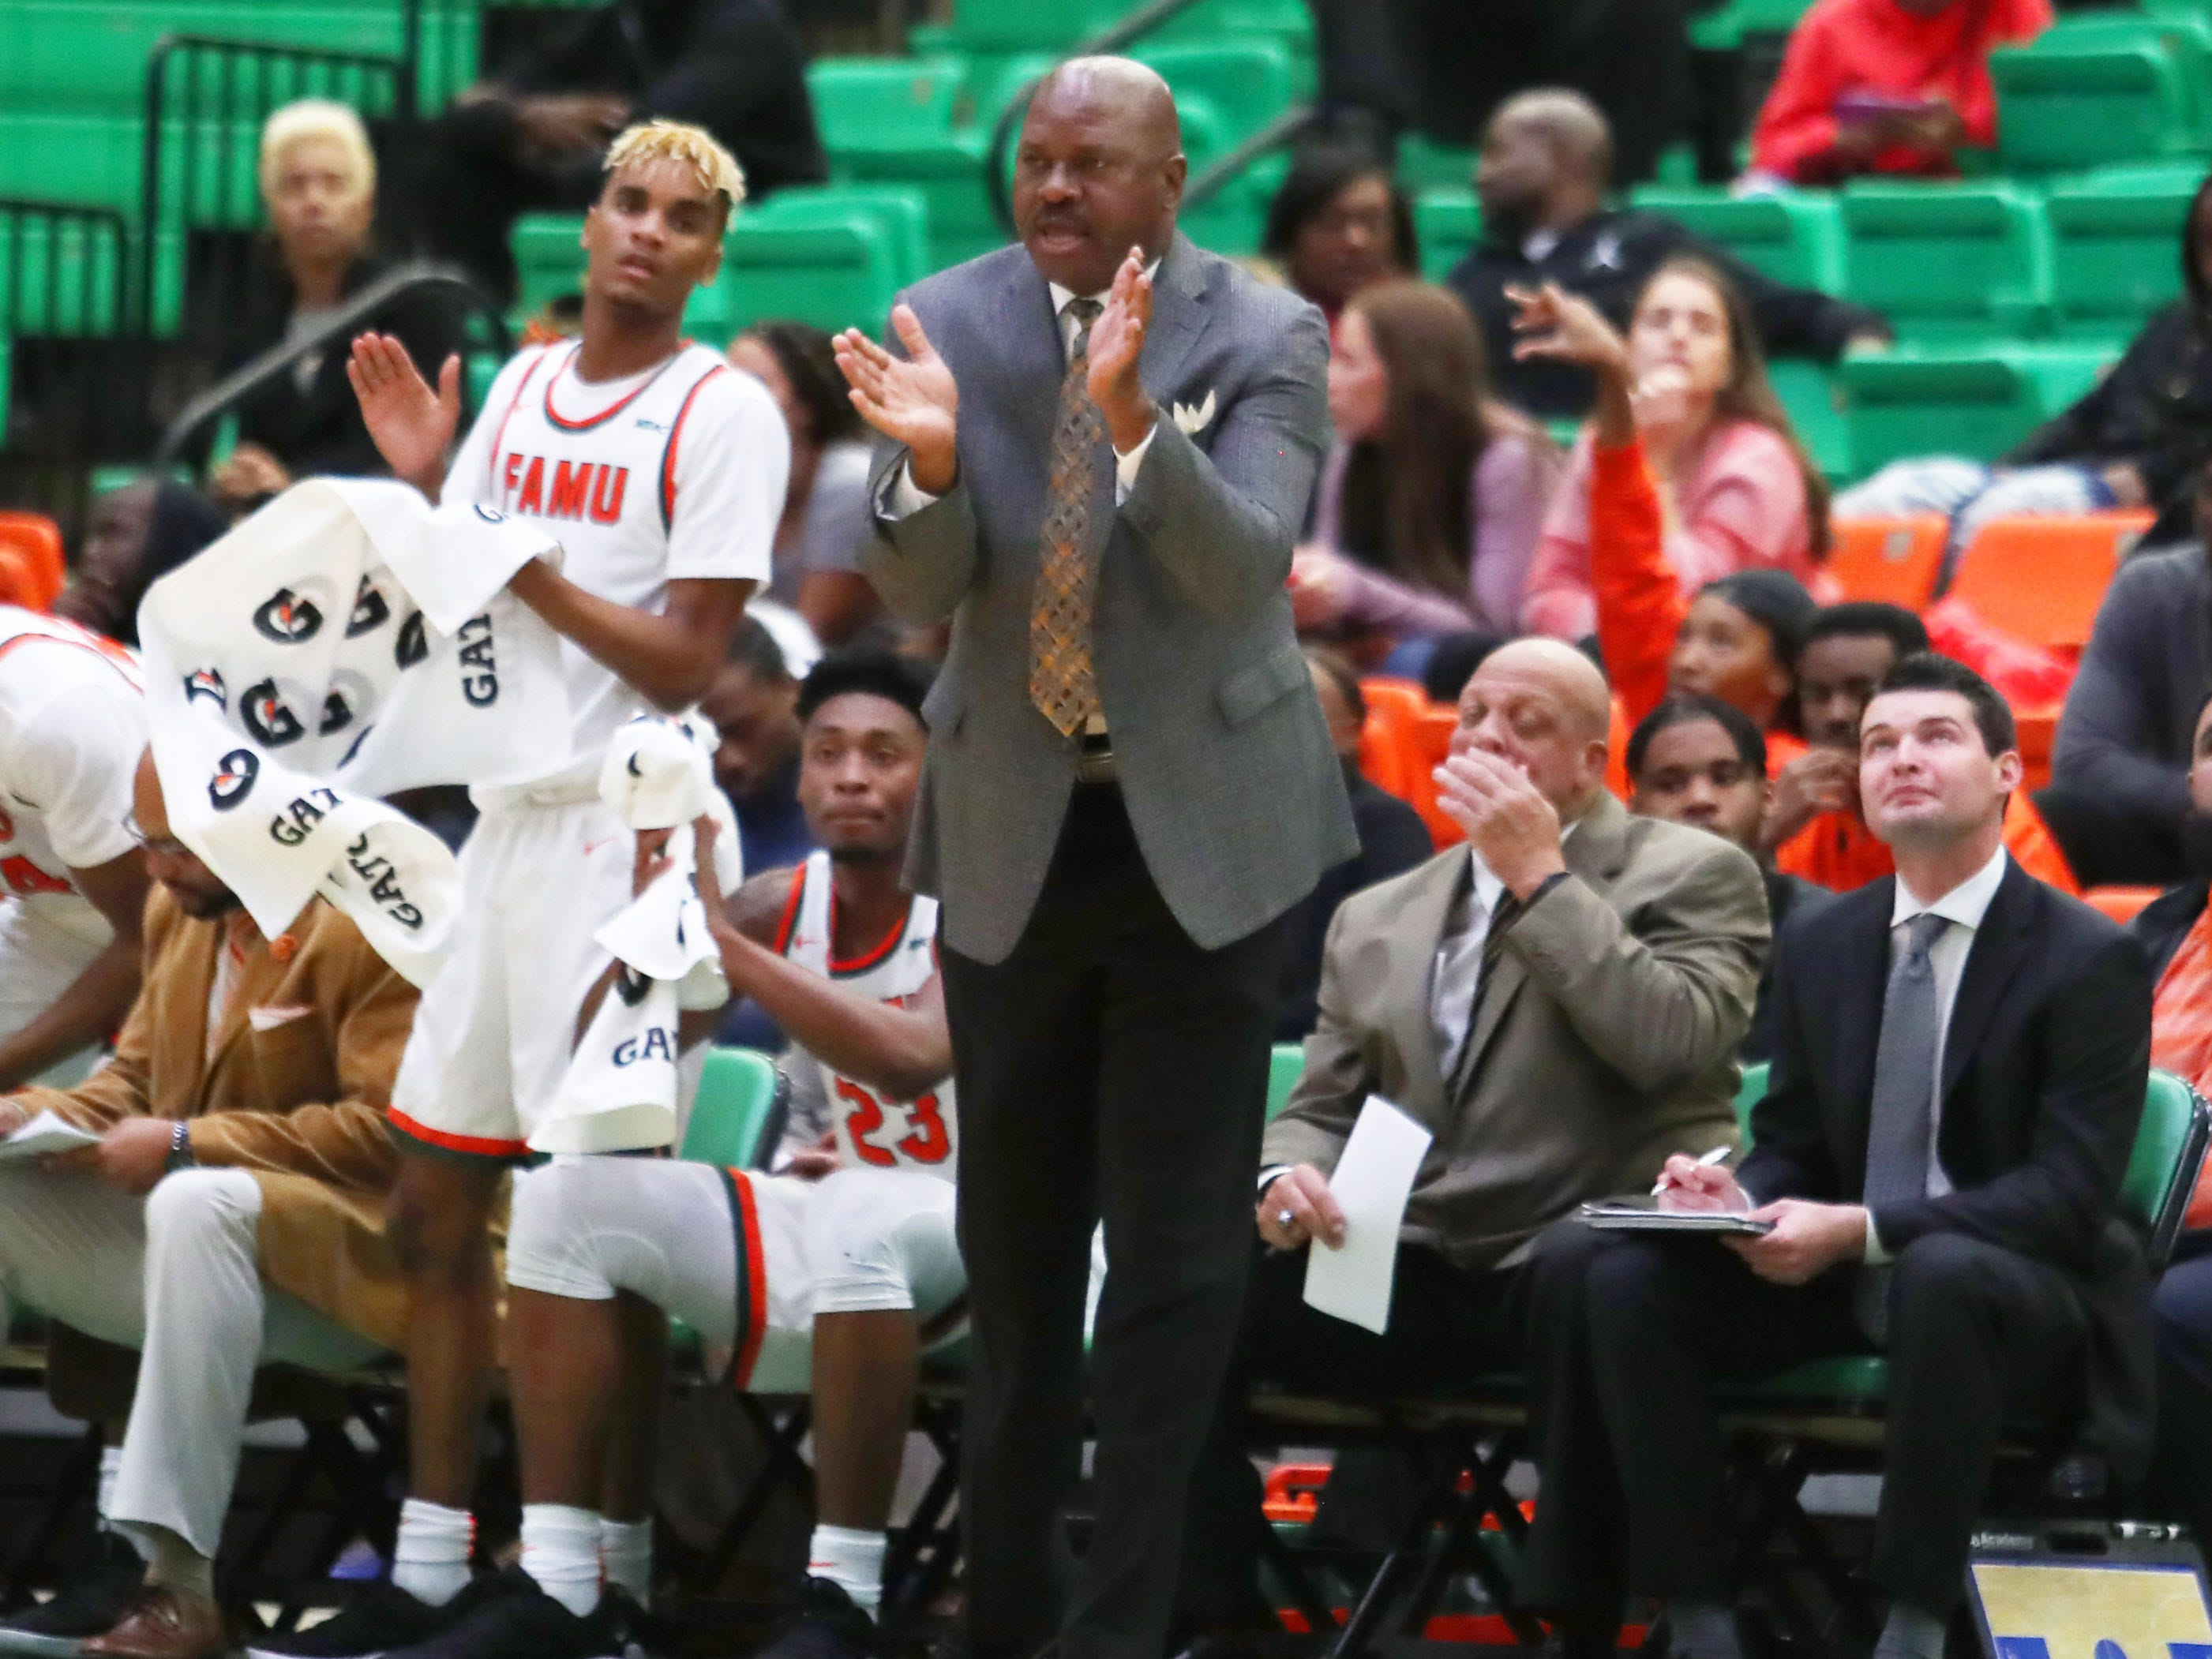 FAMU men's basketball coach Robert McCullum cheers on the team at the Al Lawson Multipurpose Center.